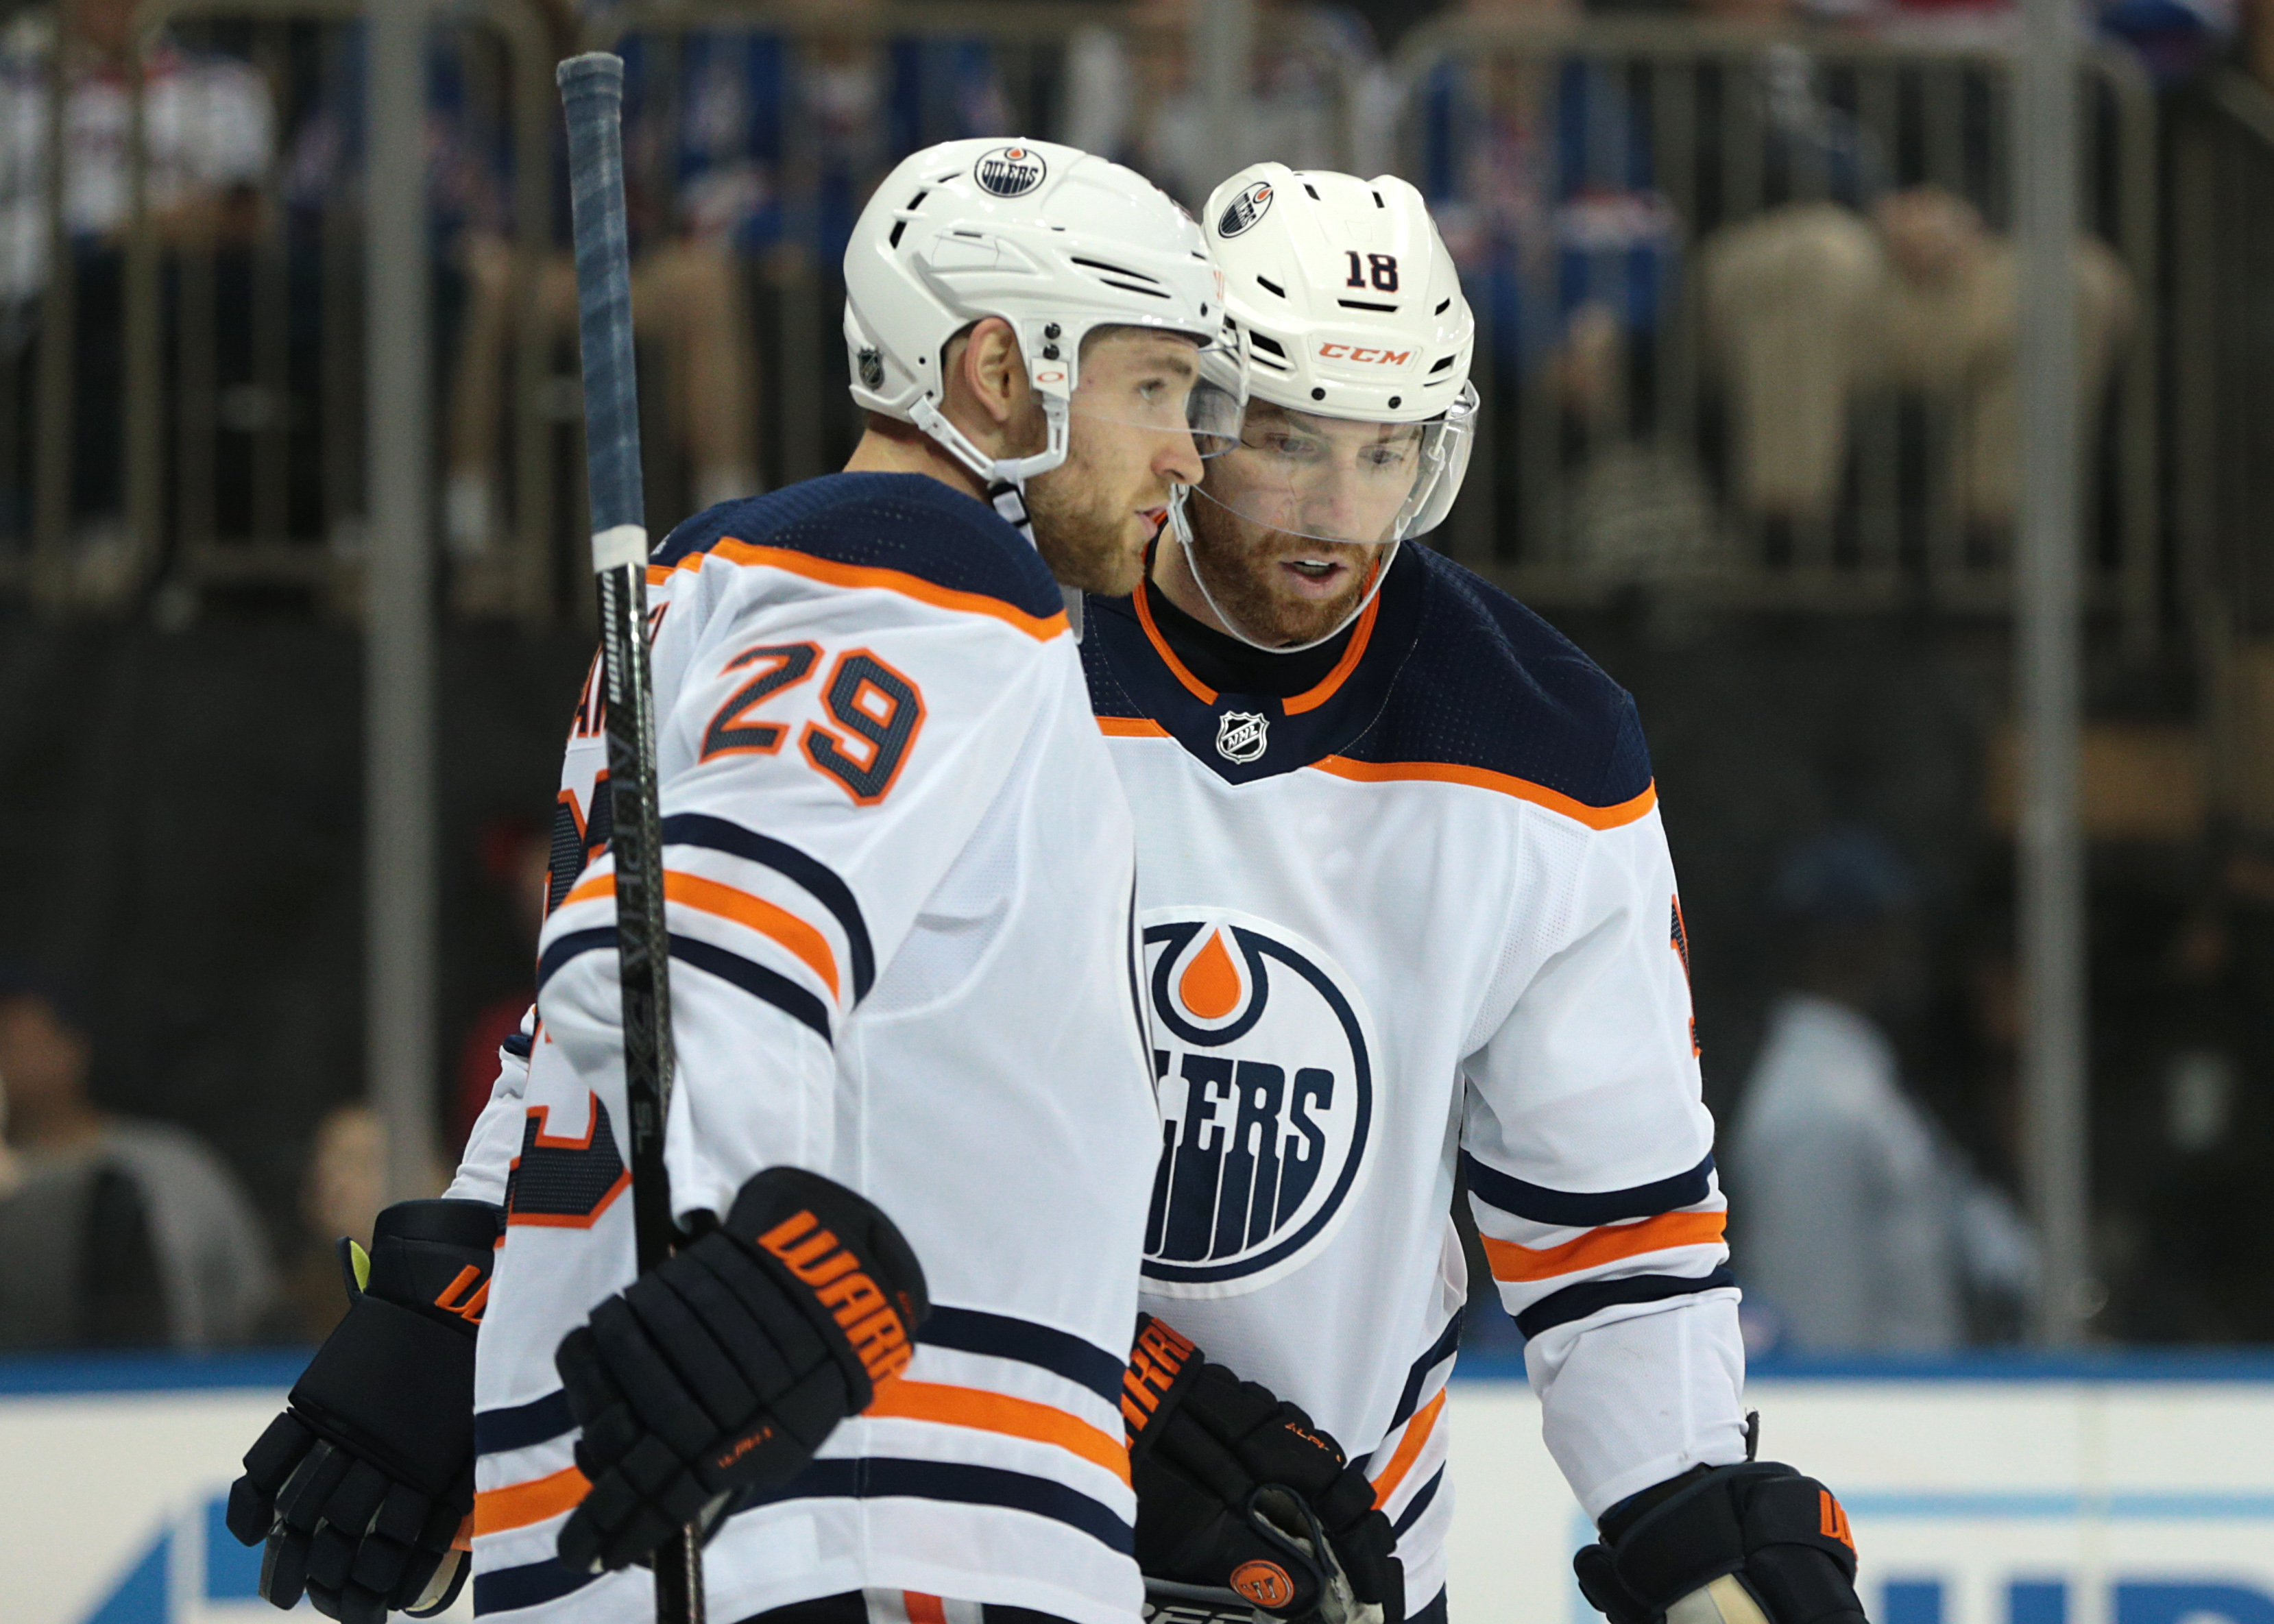 Edmonton Oilers center Leon Draisaitl (29) talks with left wing James Neal (18) during the third period against the New York Rangers at Madison Square Garden.